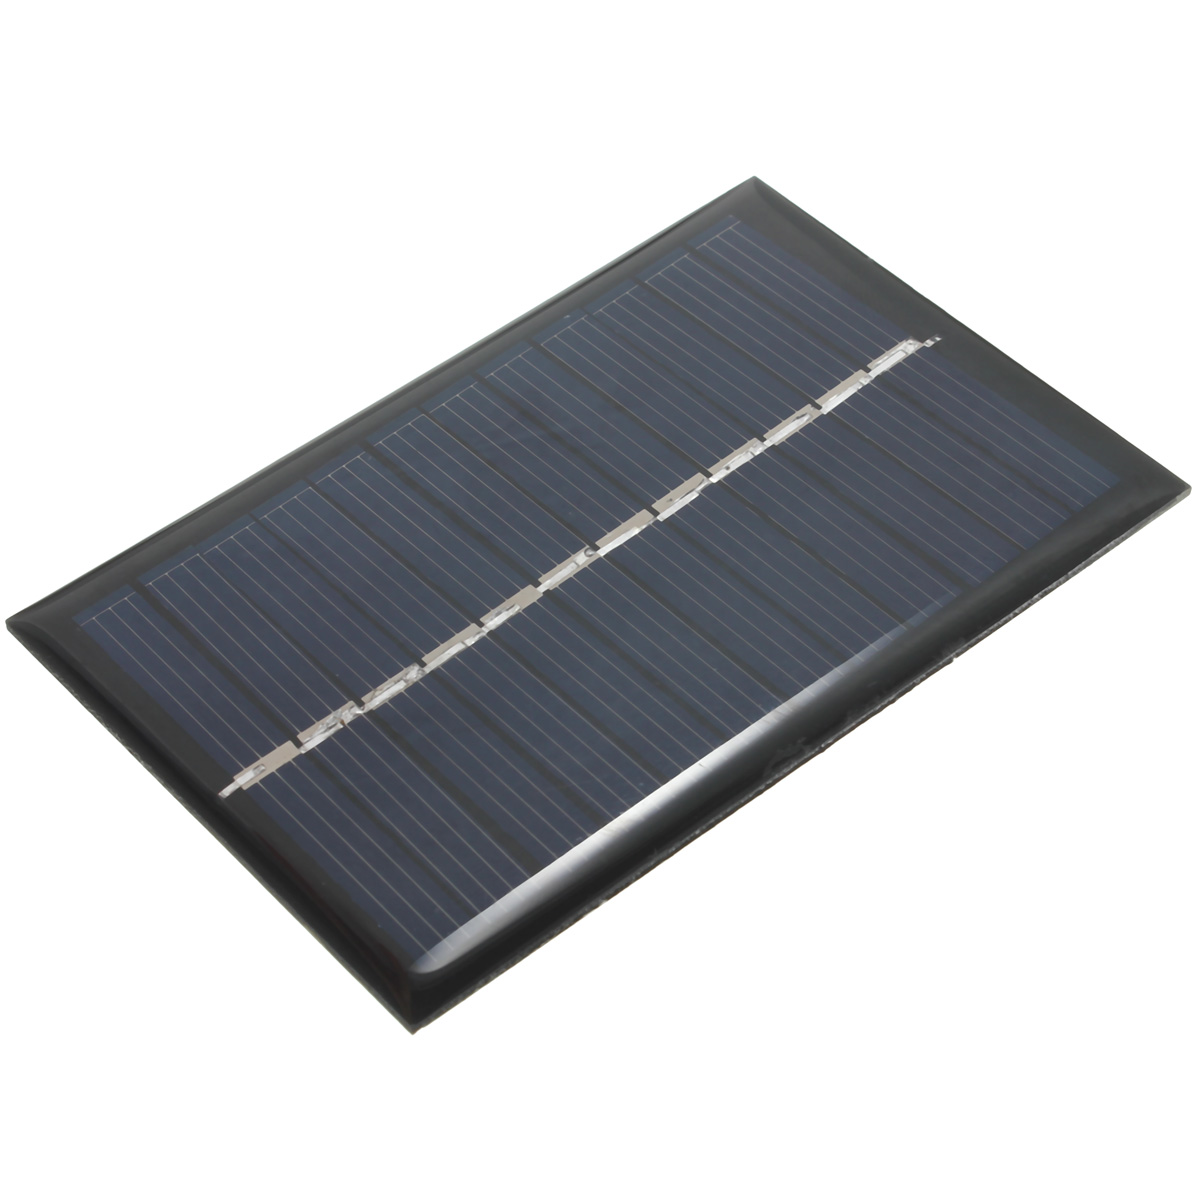 NEW 6V 0.6W 100mAh Polycrystalline Silicon Epoxy Solar Panels Module kits Mini Solar Cells For Small Power Appliances(China (Mainland))